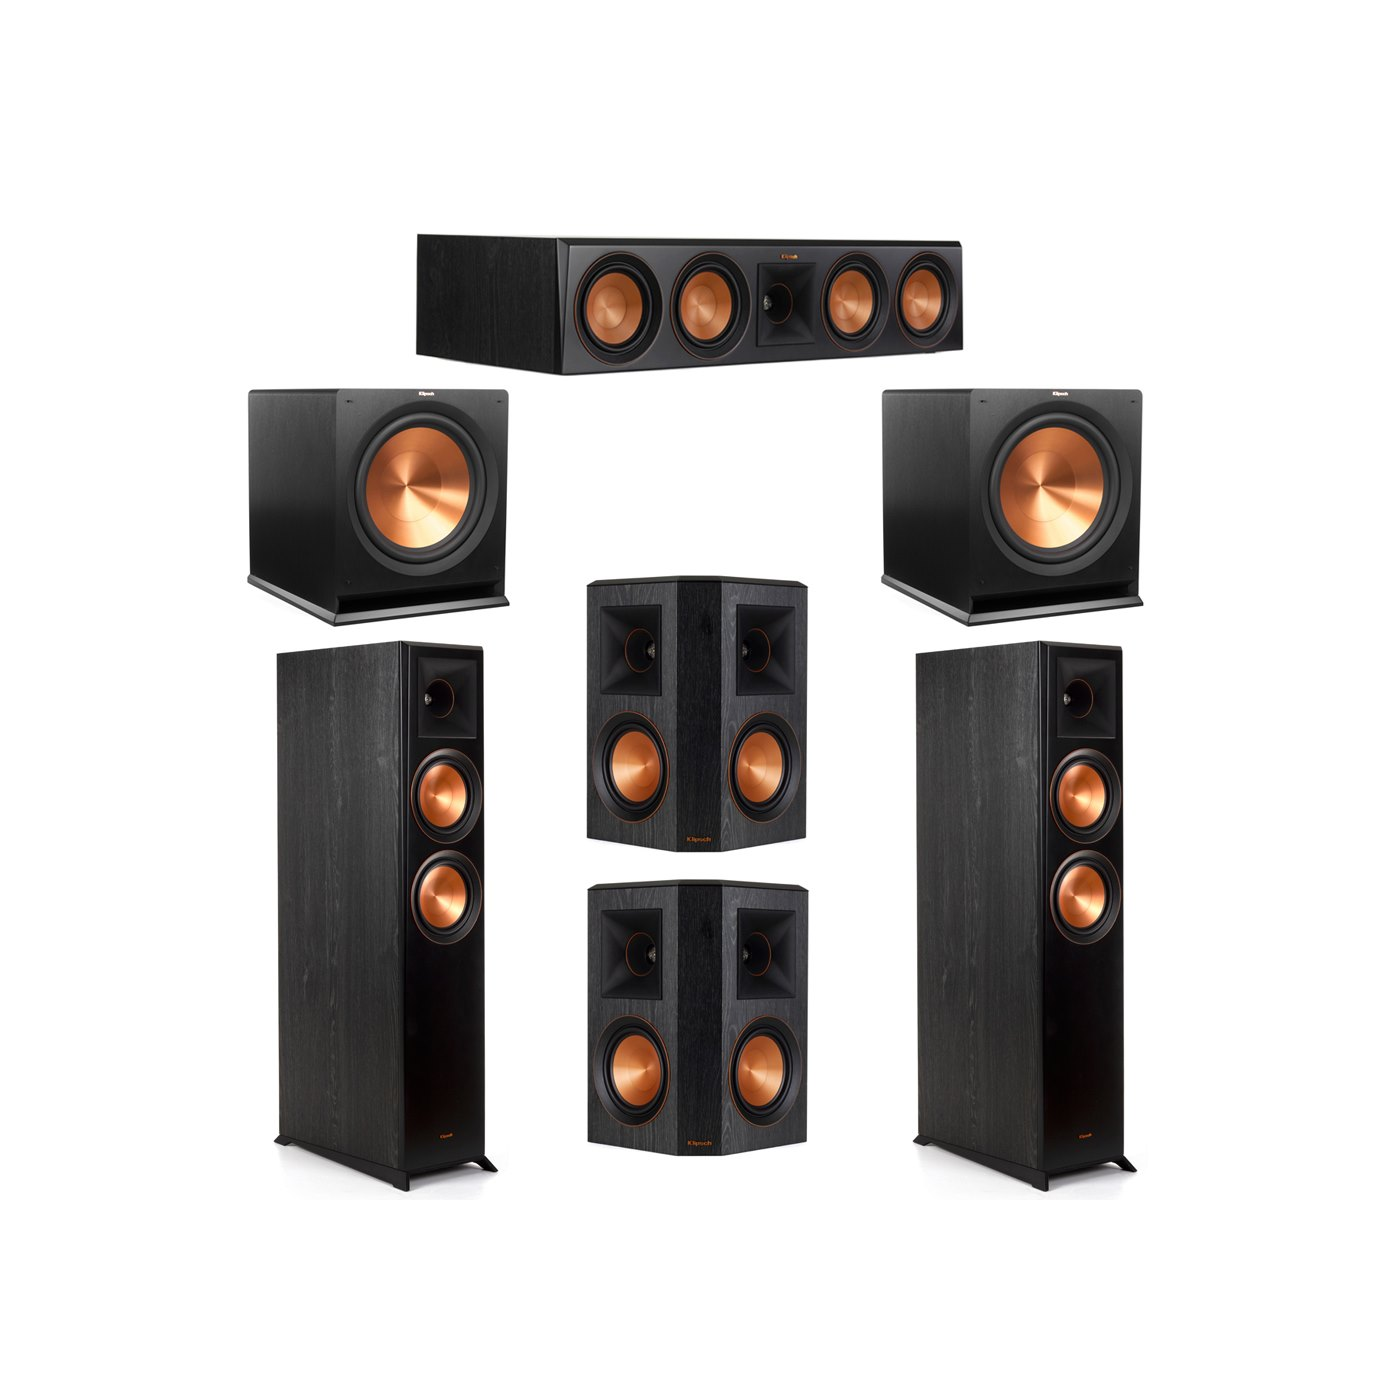 Klipsch 5.2 System with 2 RP-6000F Floorstanding Speakers, 1 Klipsch RP-504C Center Speaker, 2 Klipsch RP-502S Surround Speakers, 2 Klipsch R-115SW Subwoofers